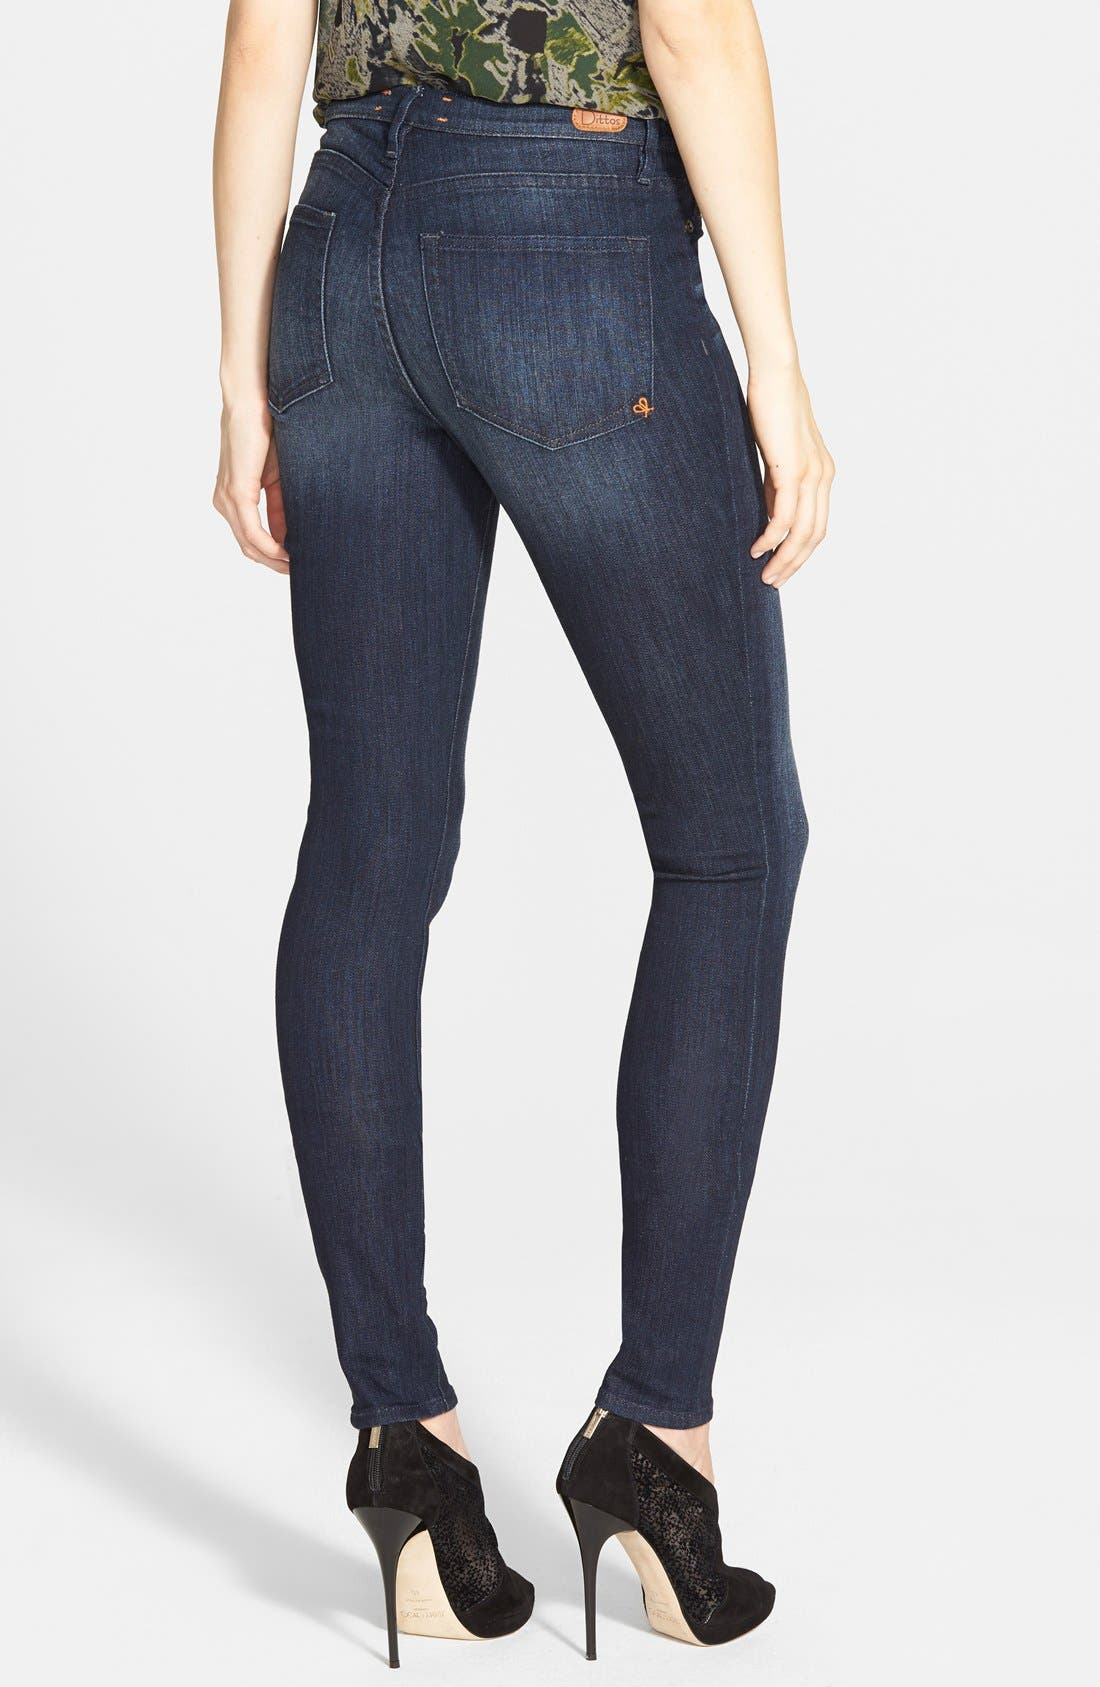 Alternate Image 2  - Dittos Mid Rise Super Skinny Jeans (Blue)